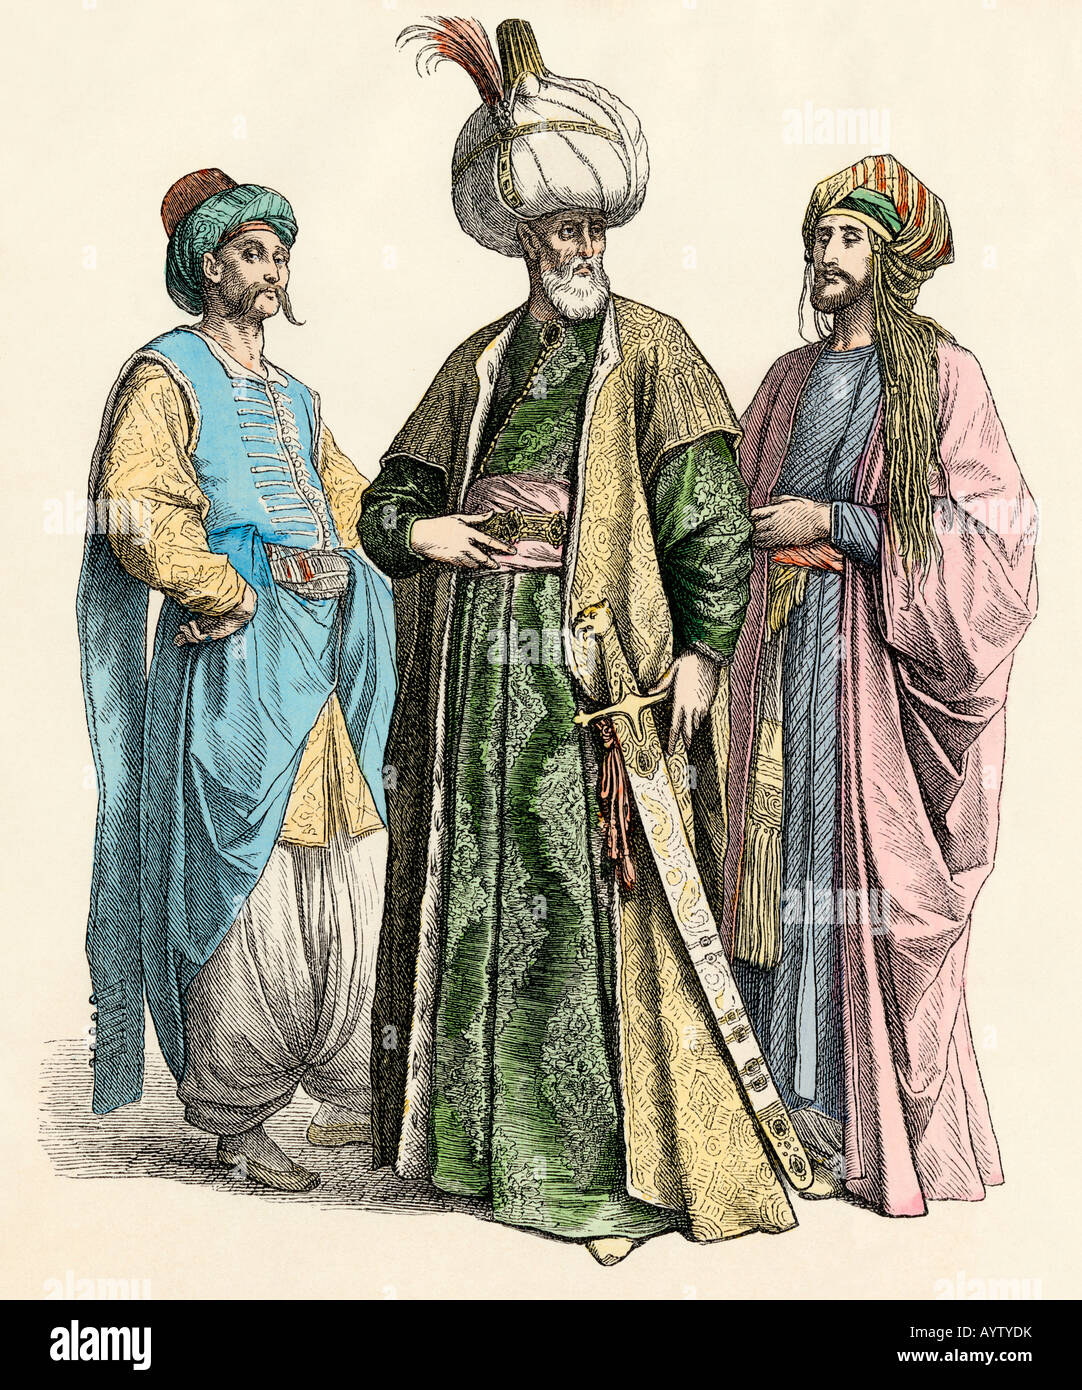 Turkish sultan and officials of the Ottoman Empire. Hand-colored print - Stock Image